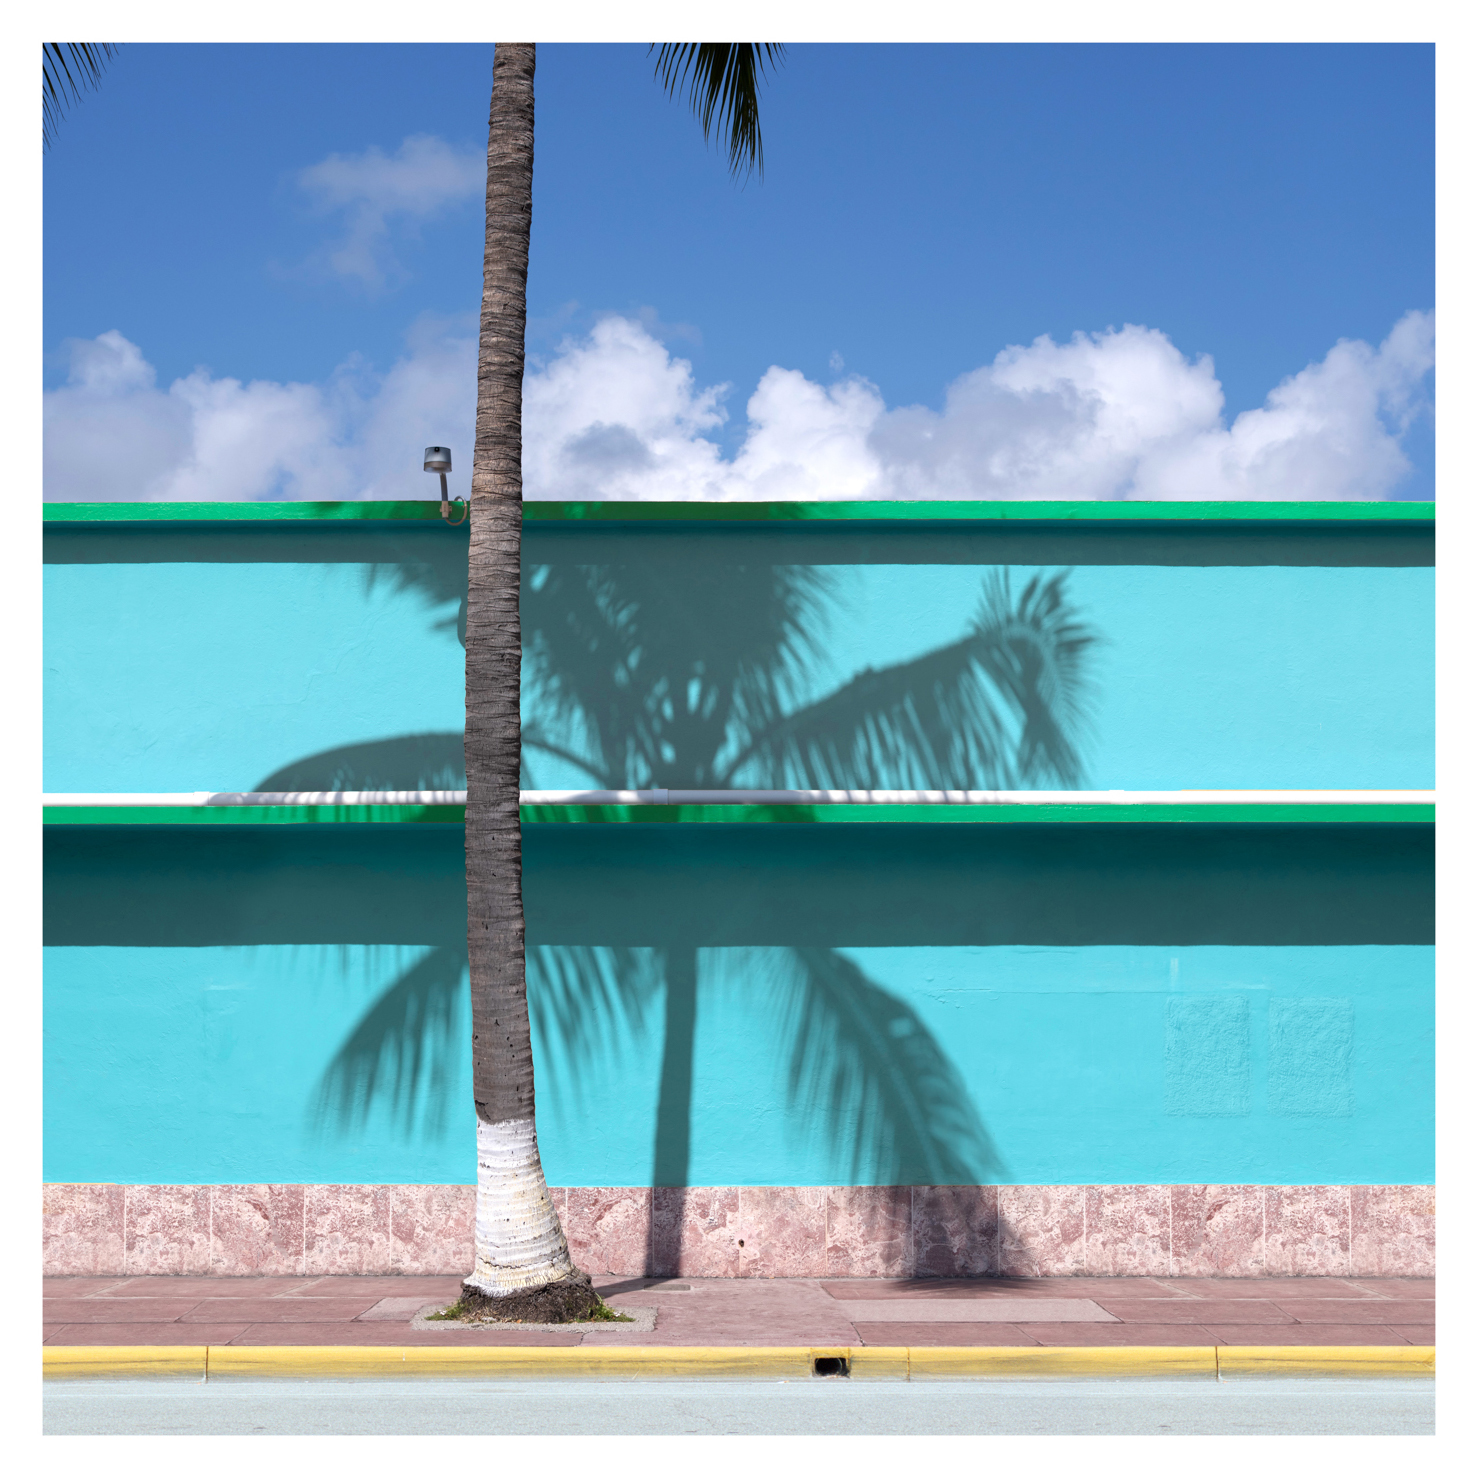 george-byrne-olsen-gruin-13-Blue-Wall-Miami-2019-FNL-Small-Border